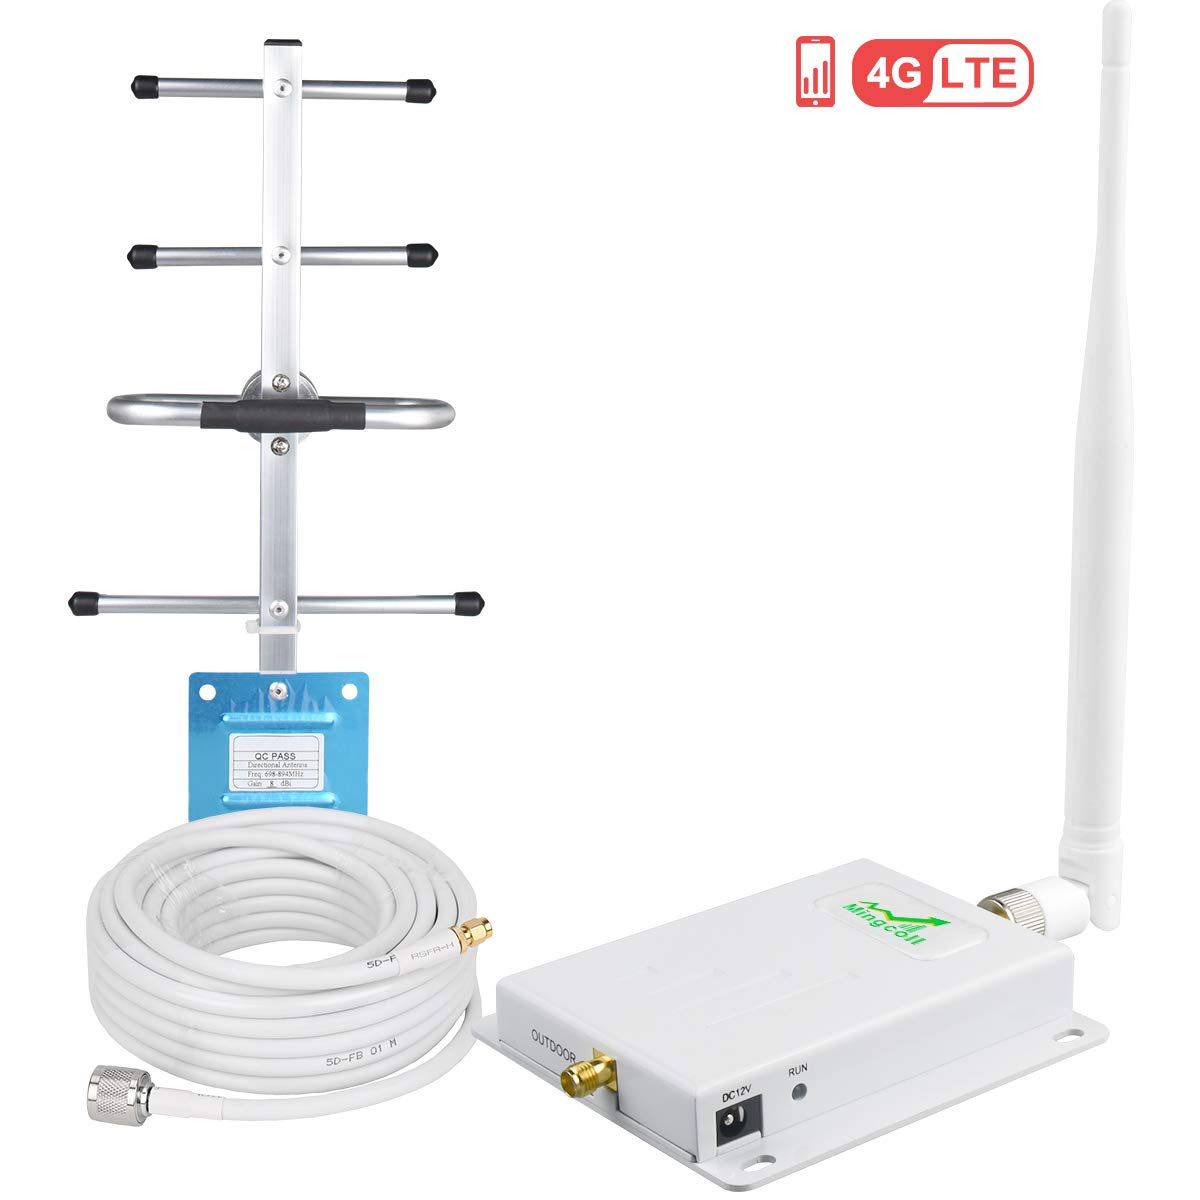 Verizon Cell Phone Signal Booster Mingcoll 4G LTE Cell Signal Booster Repeater 700MHz Band 13 Cell Phone Signal Amplifier Mobile Phone Signal Booster Kit for Home/Office